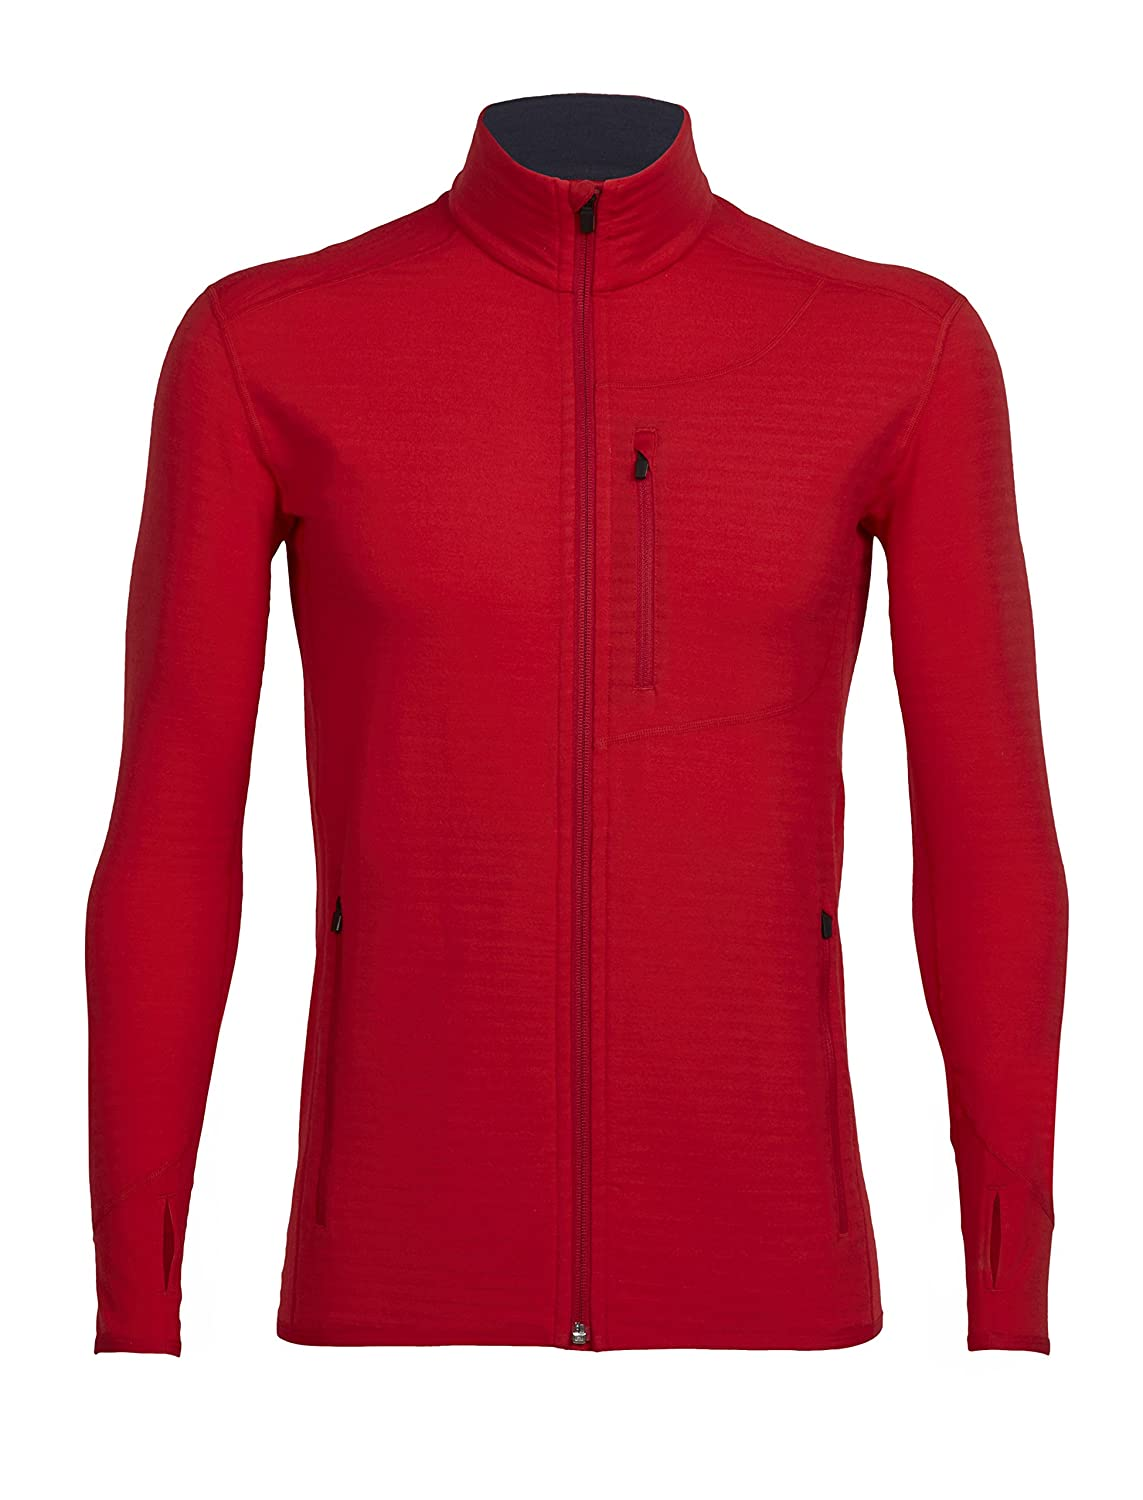 Icebreaker Merino Descender Long Sleeve Zip Top, New Zealand Merino Wool